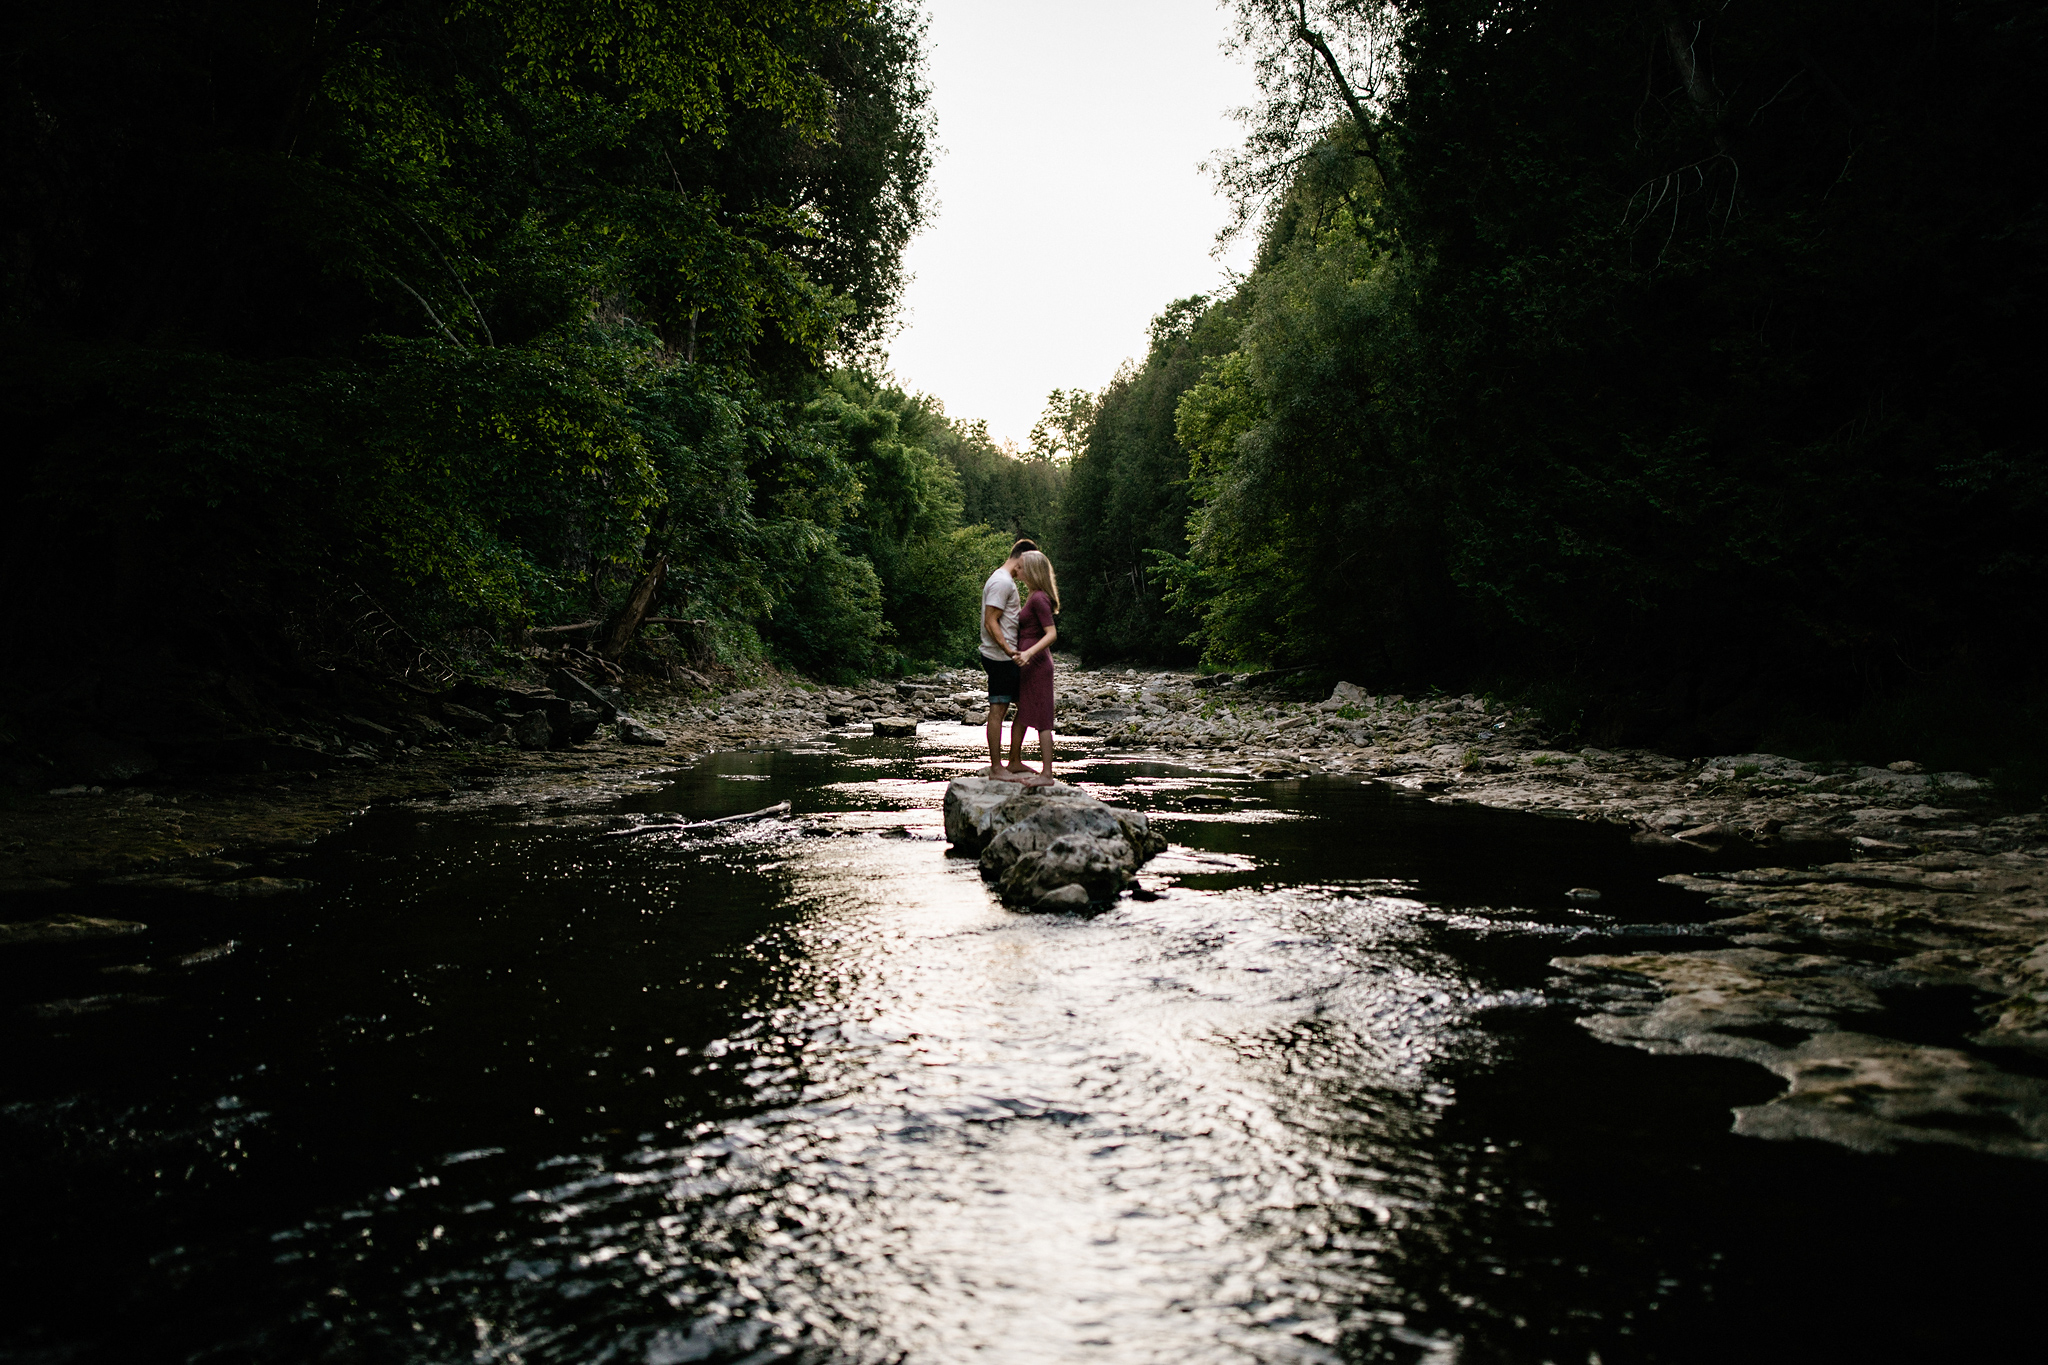 270-romantic-summer-elora-gorge-sunset-engagement-session.jpg